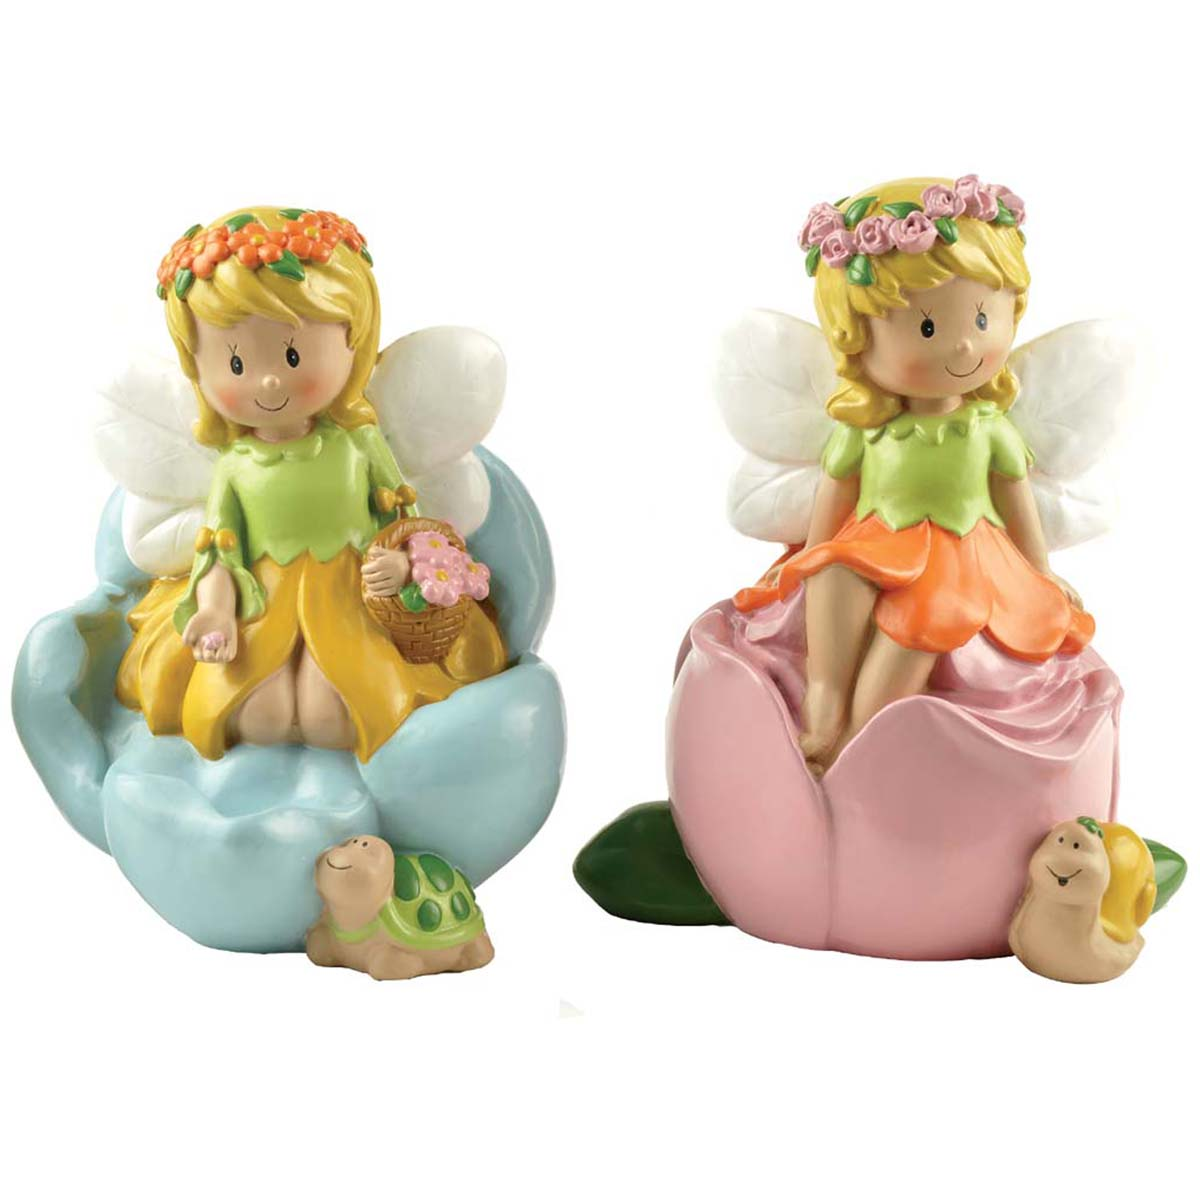 Ennas personalized figurines low-cost from best factory-1